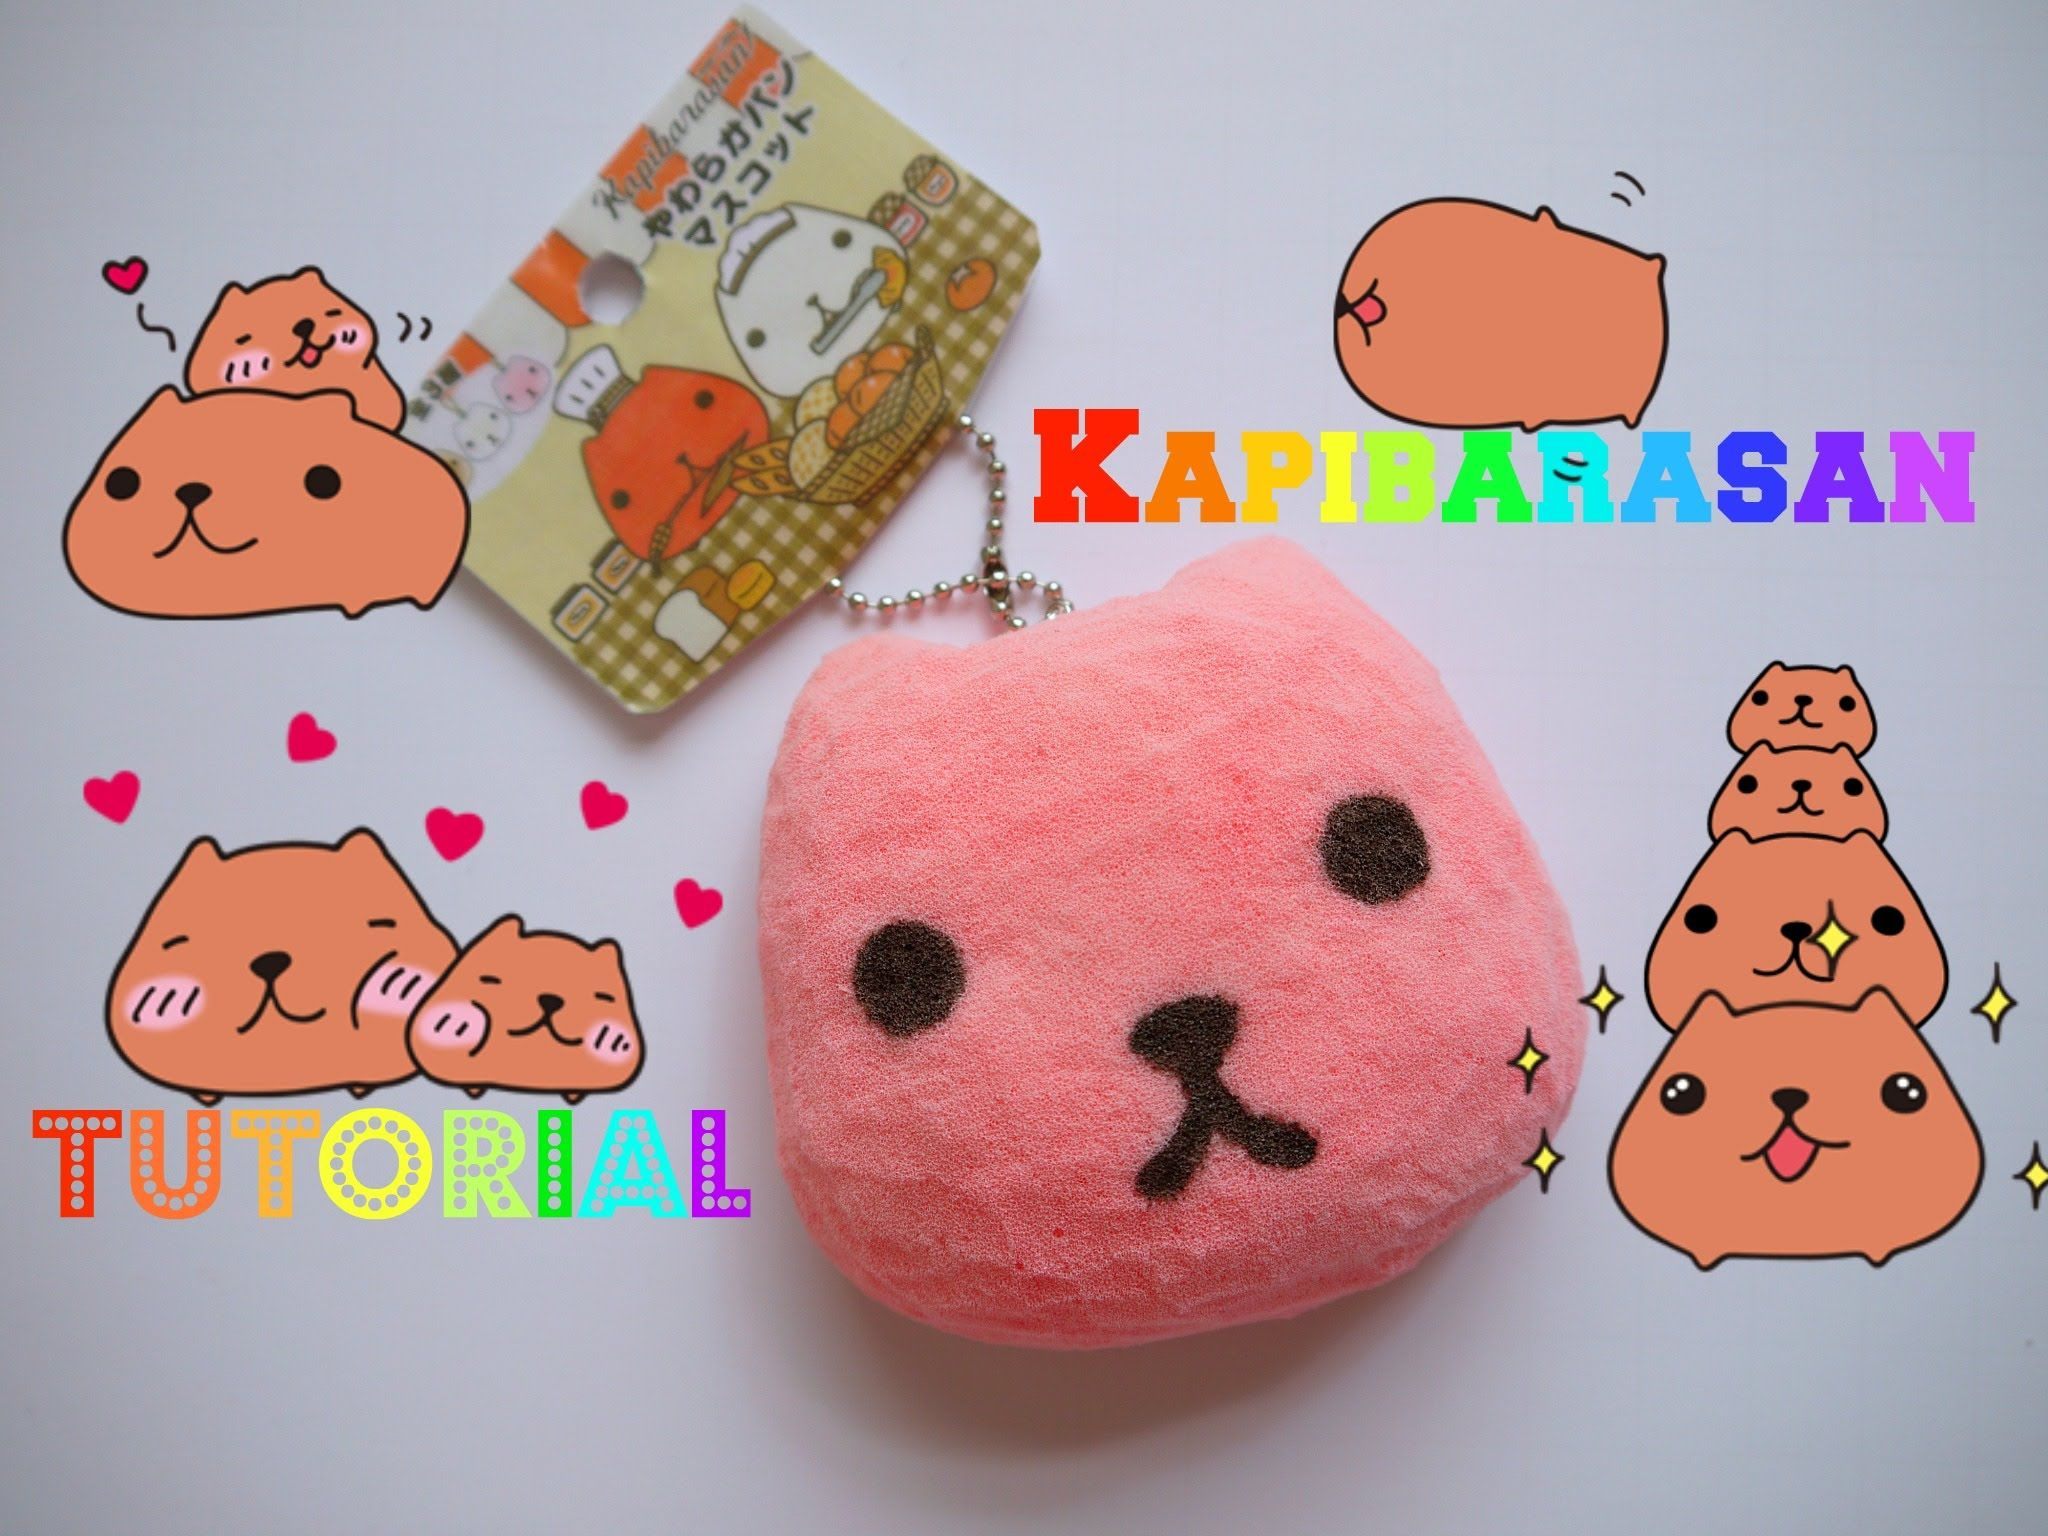 Squishy Bun Diy : Kapibarasan Squishy Tutorial Crafts Pinterest Squishies, Tutorials and Kawaii plush